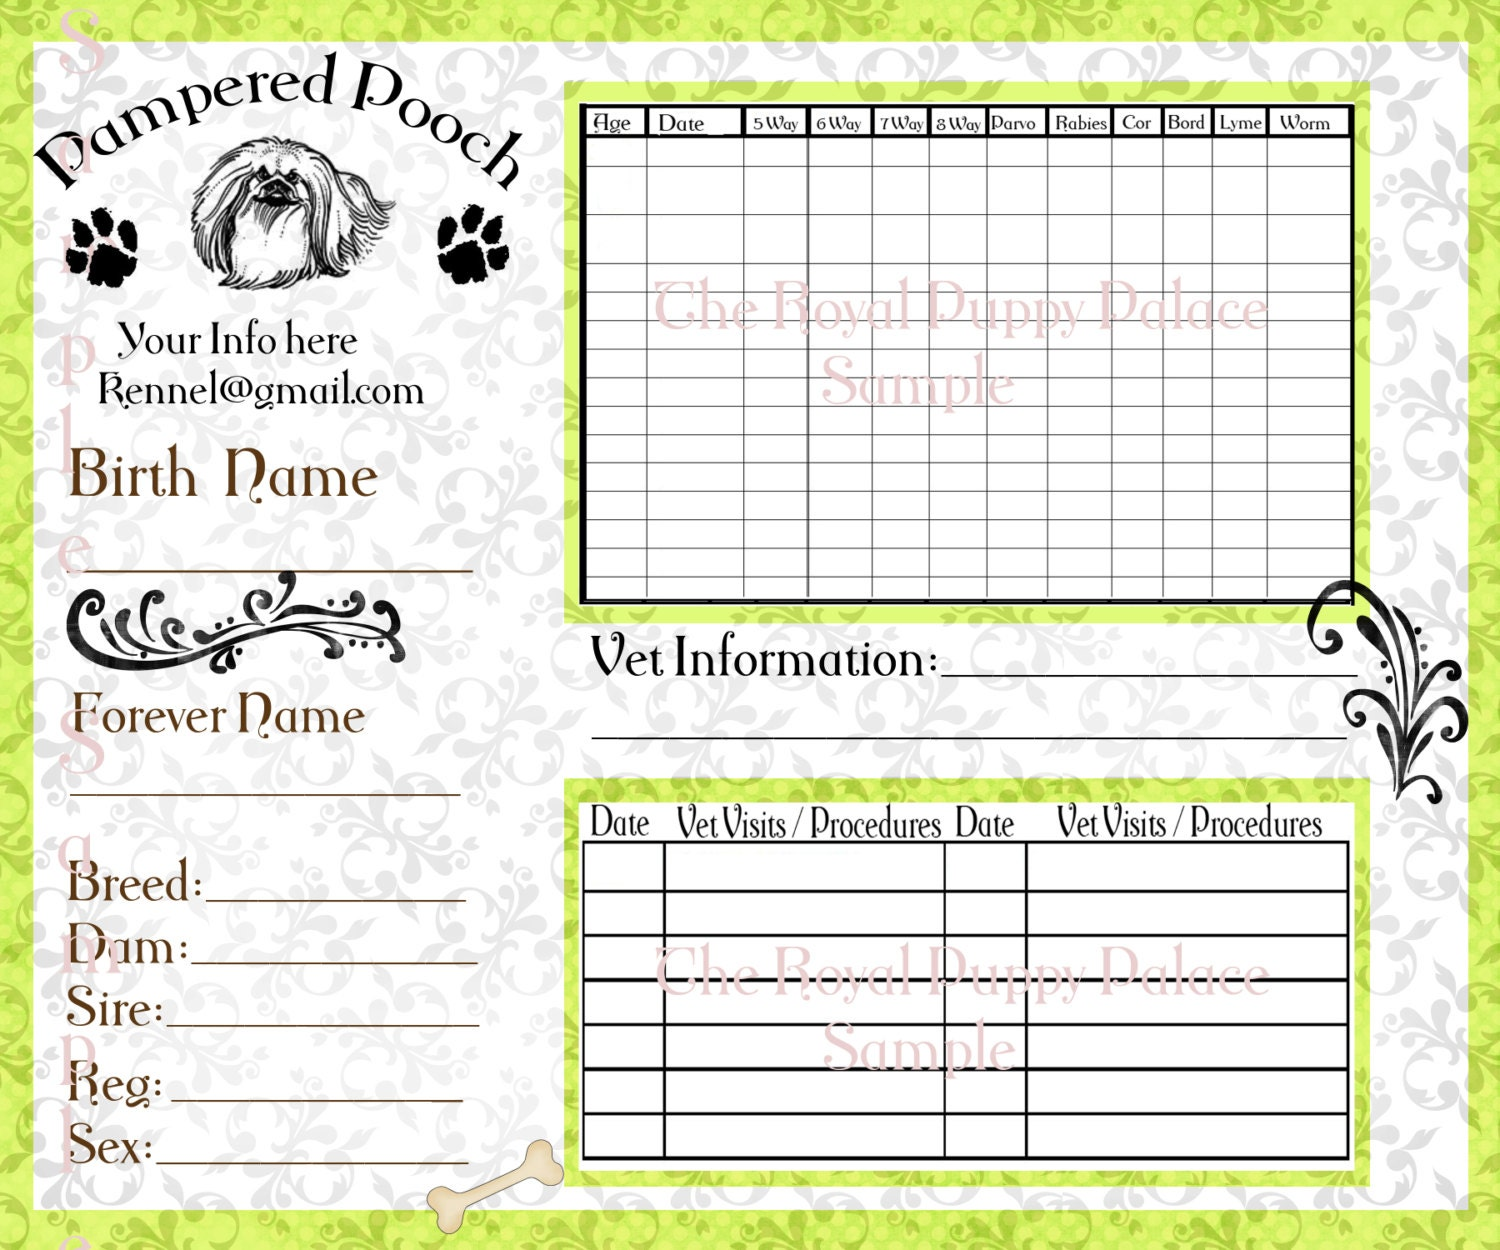 Pampered pooch green customizable vaccination cards for dog for Dog health record template